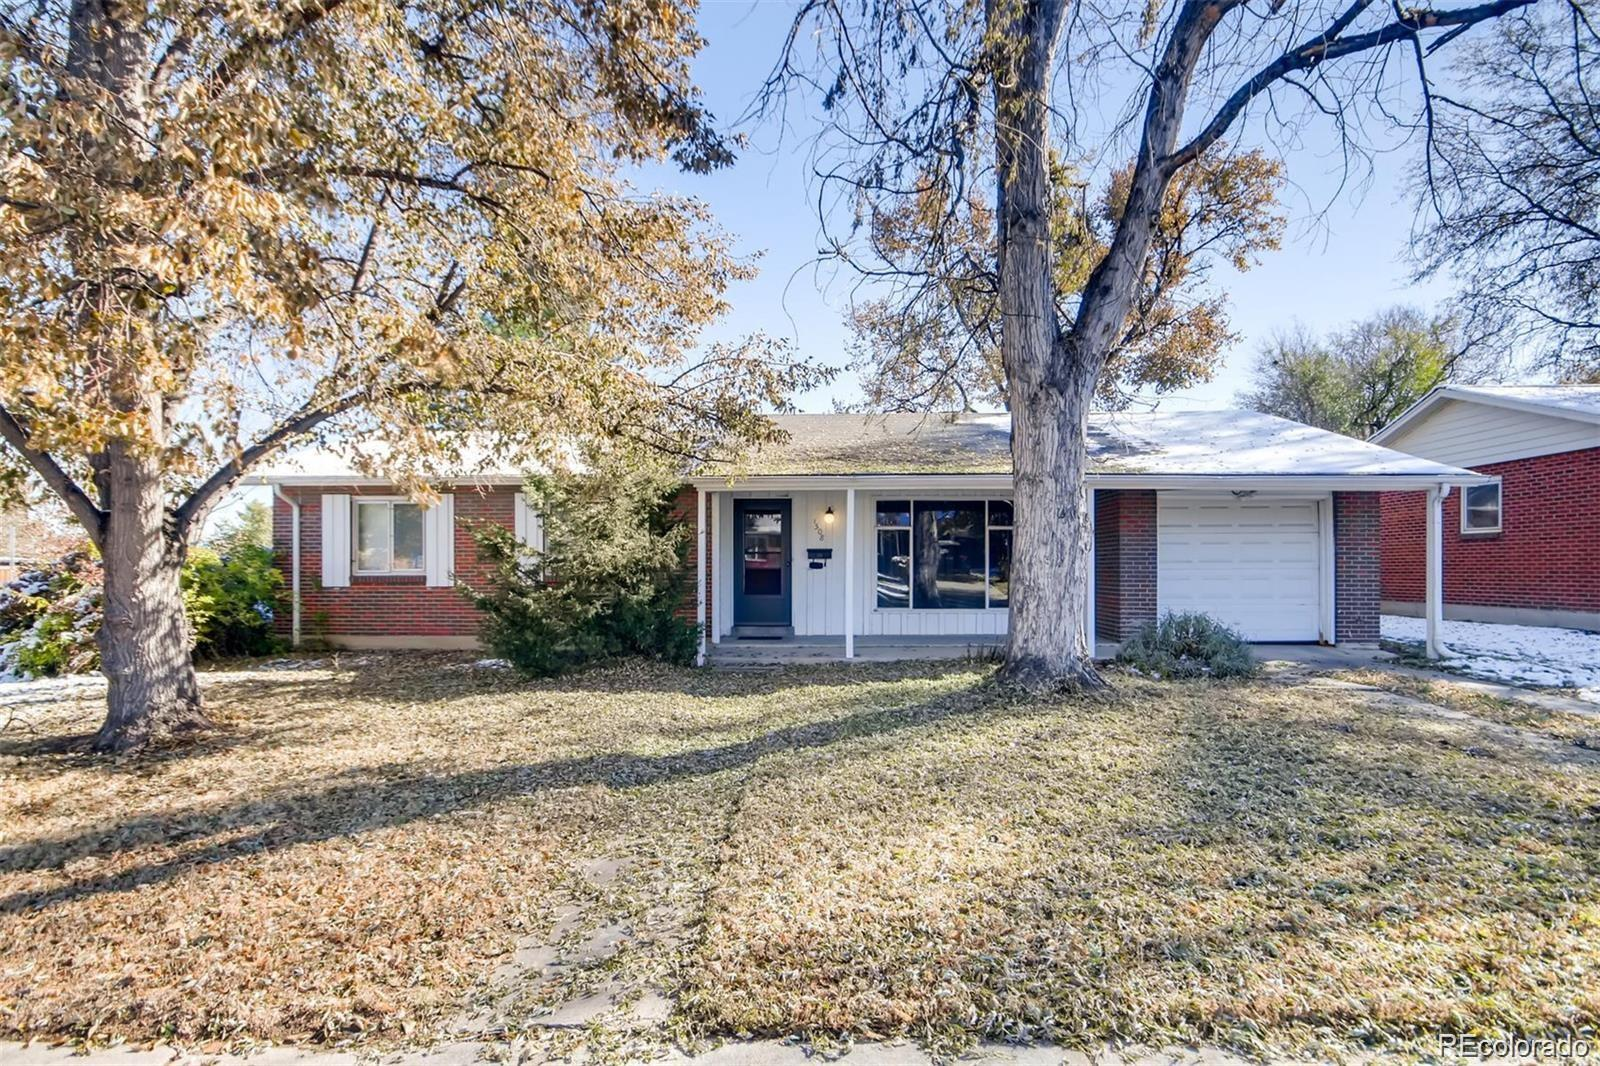 1508 S Fairfax Street Property Photo - Denver, CO real estate listing